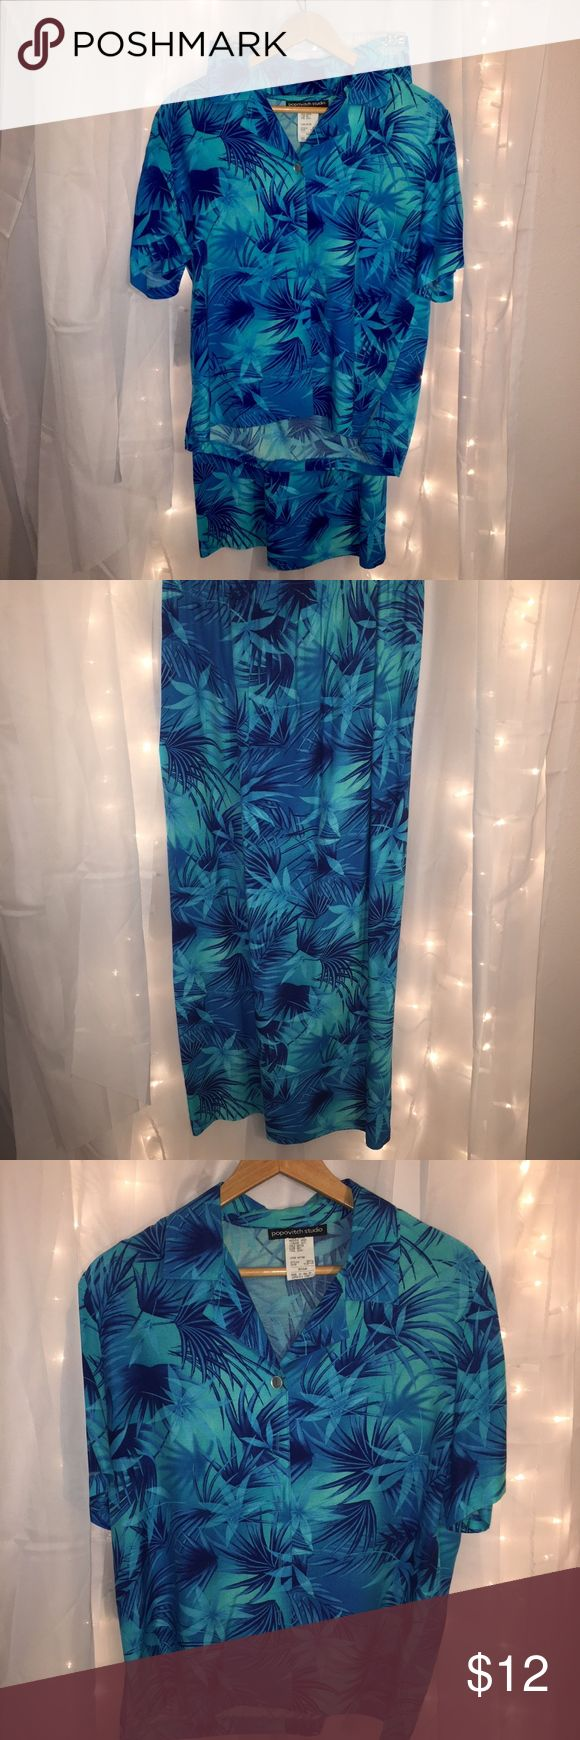 Blue & Turquoise Tropical Print Shirt & Skirt Set This set includes a matching top and skirt. The top is short sleeve, button up and collared. The skirt is floor length. Both have a blue and turquoise tropical floral pattern all over.   Willing to separate if you're interested in just one piece. Skirts Maxi